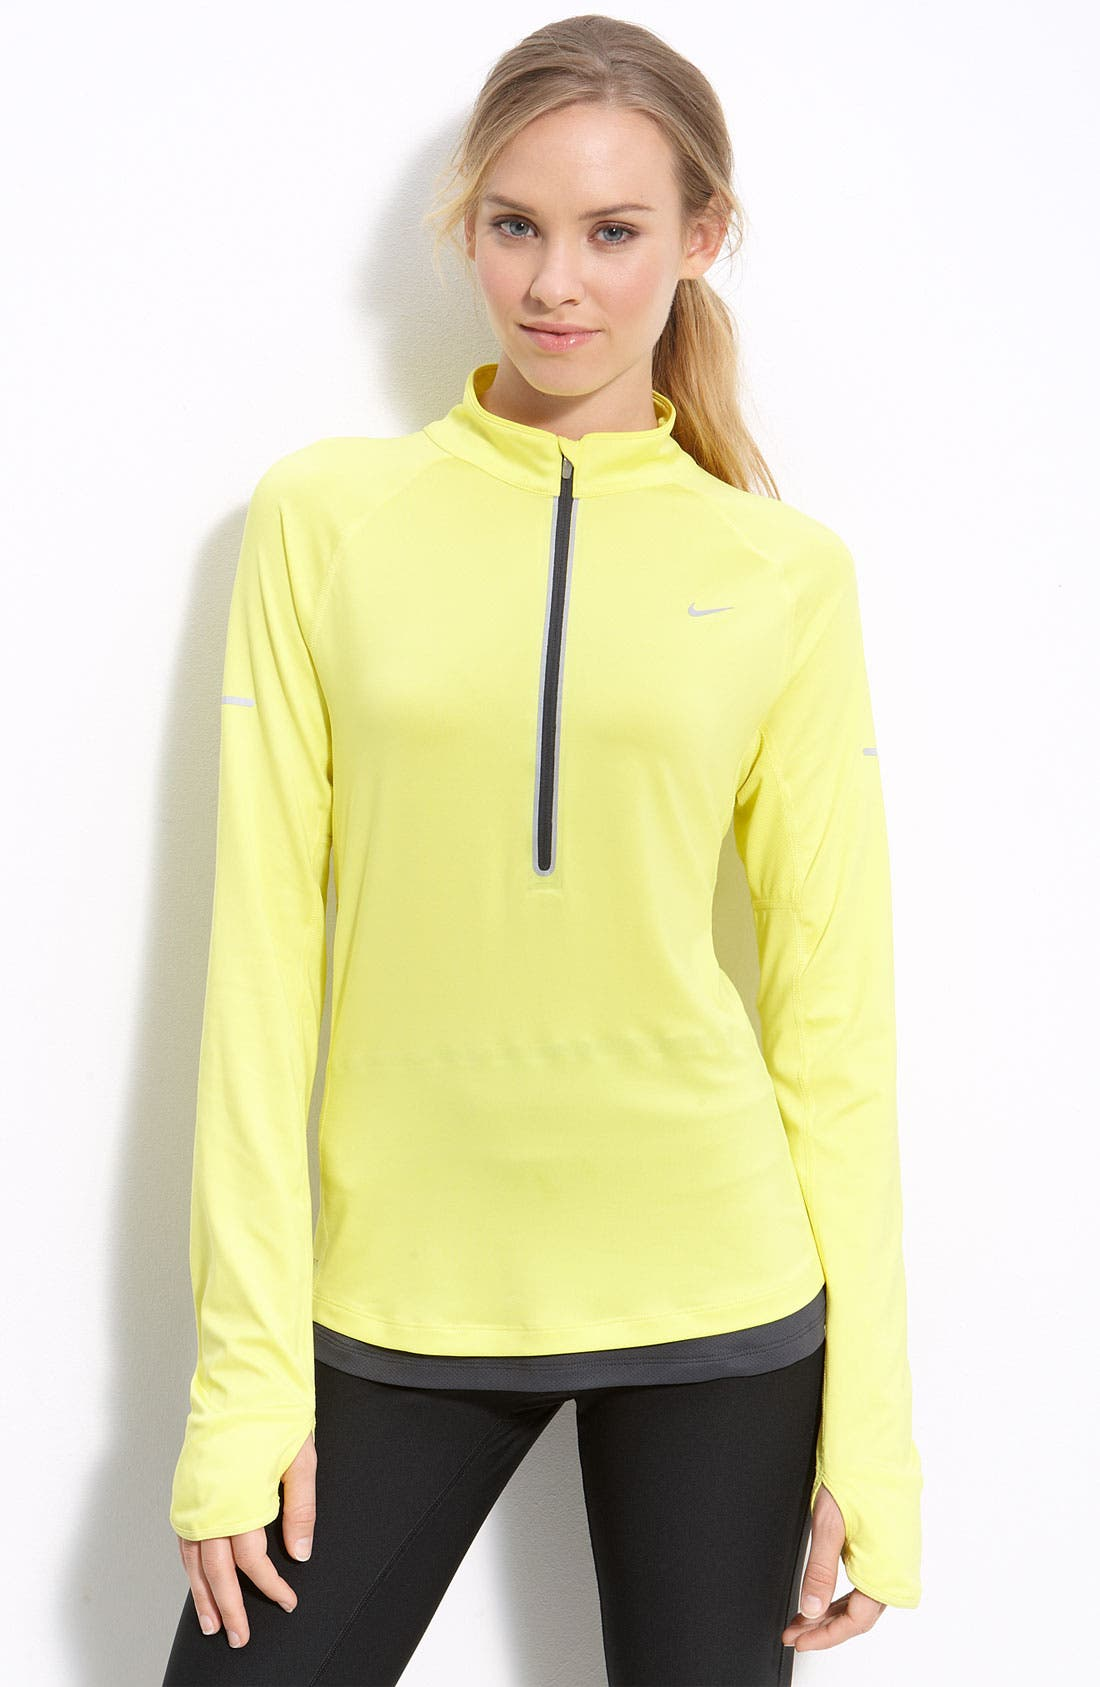 'Denier Differential' Half Zip Running Top,                             Main thumbnail 1, color,                             700